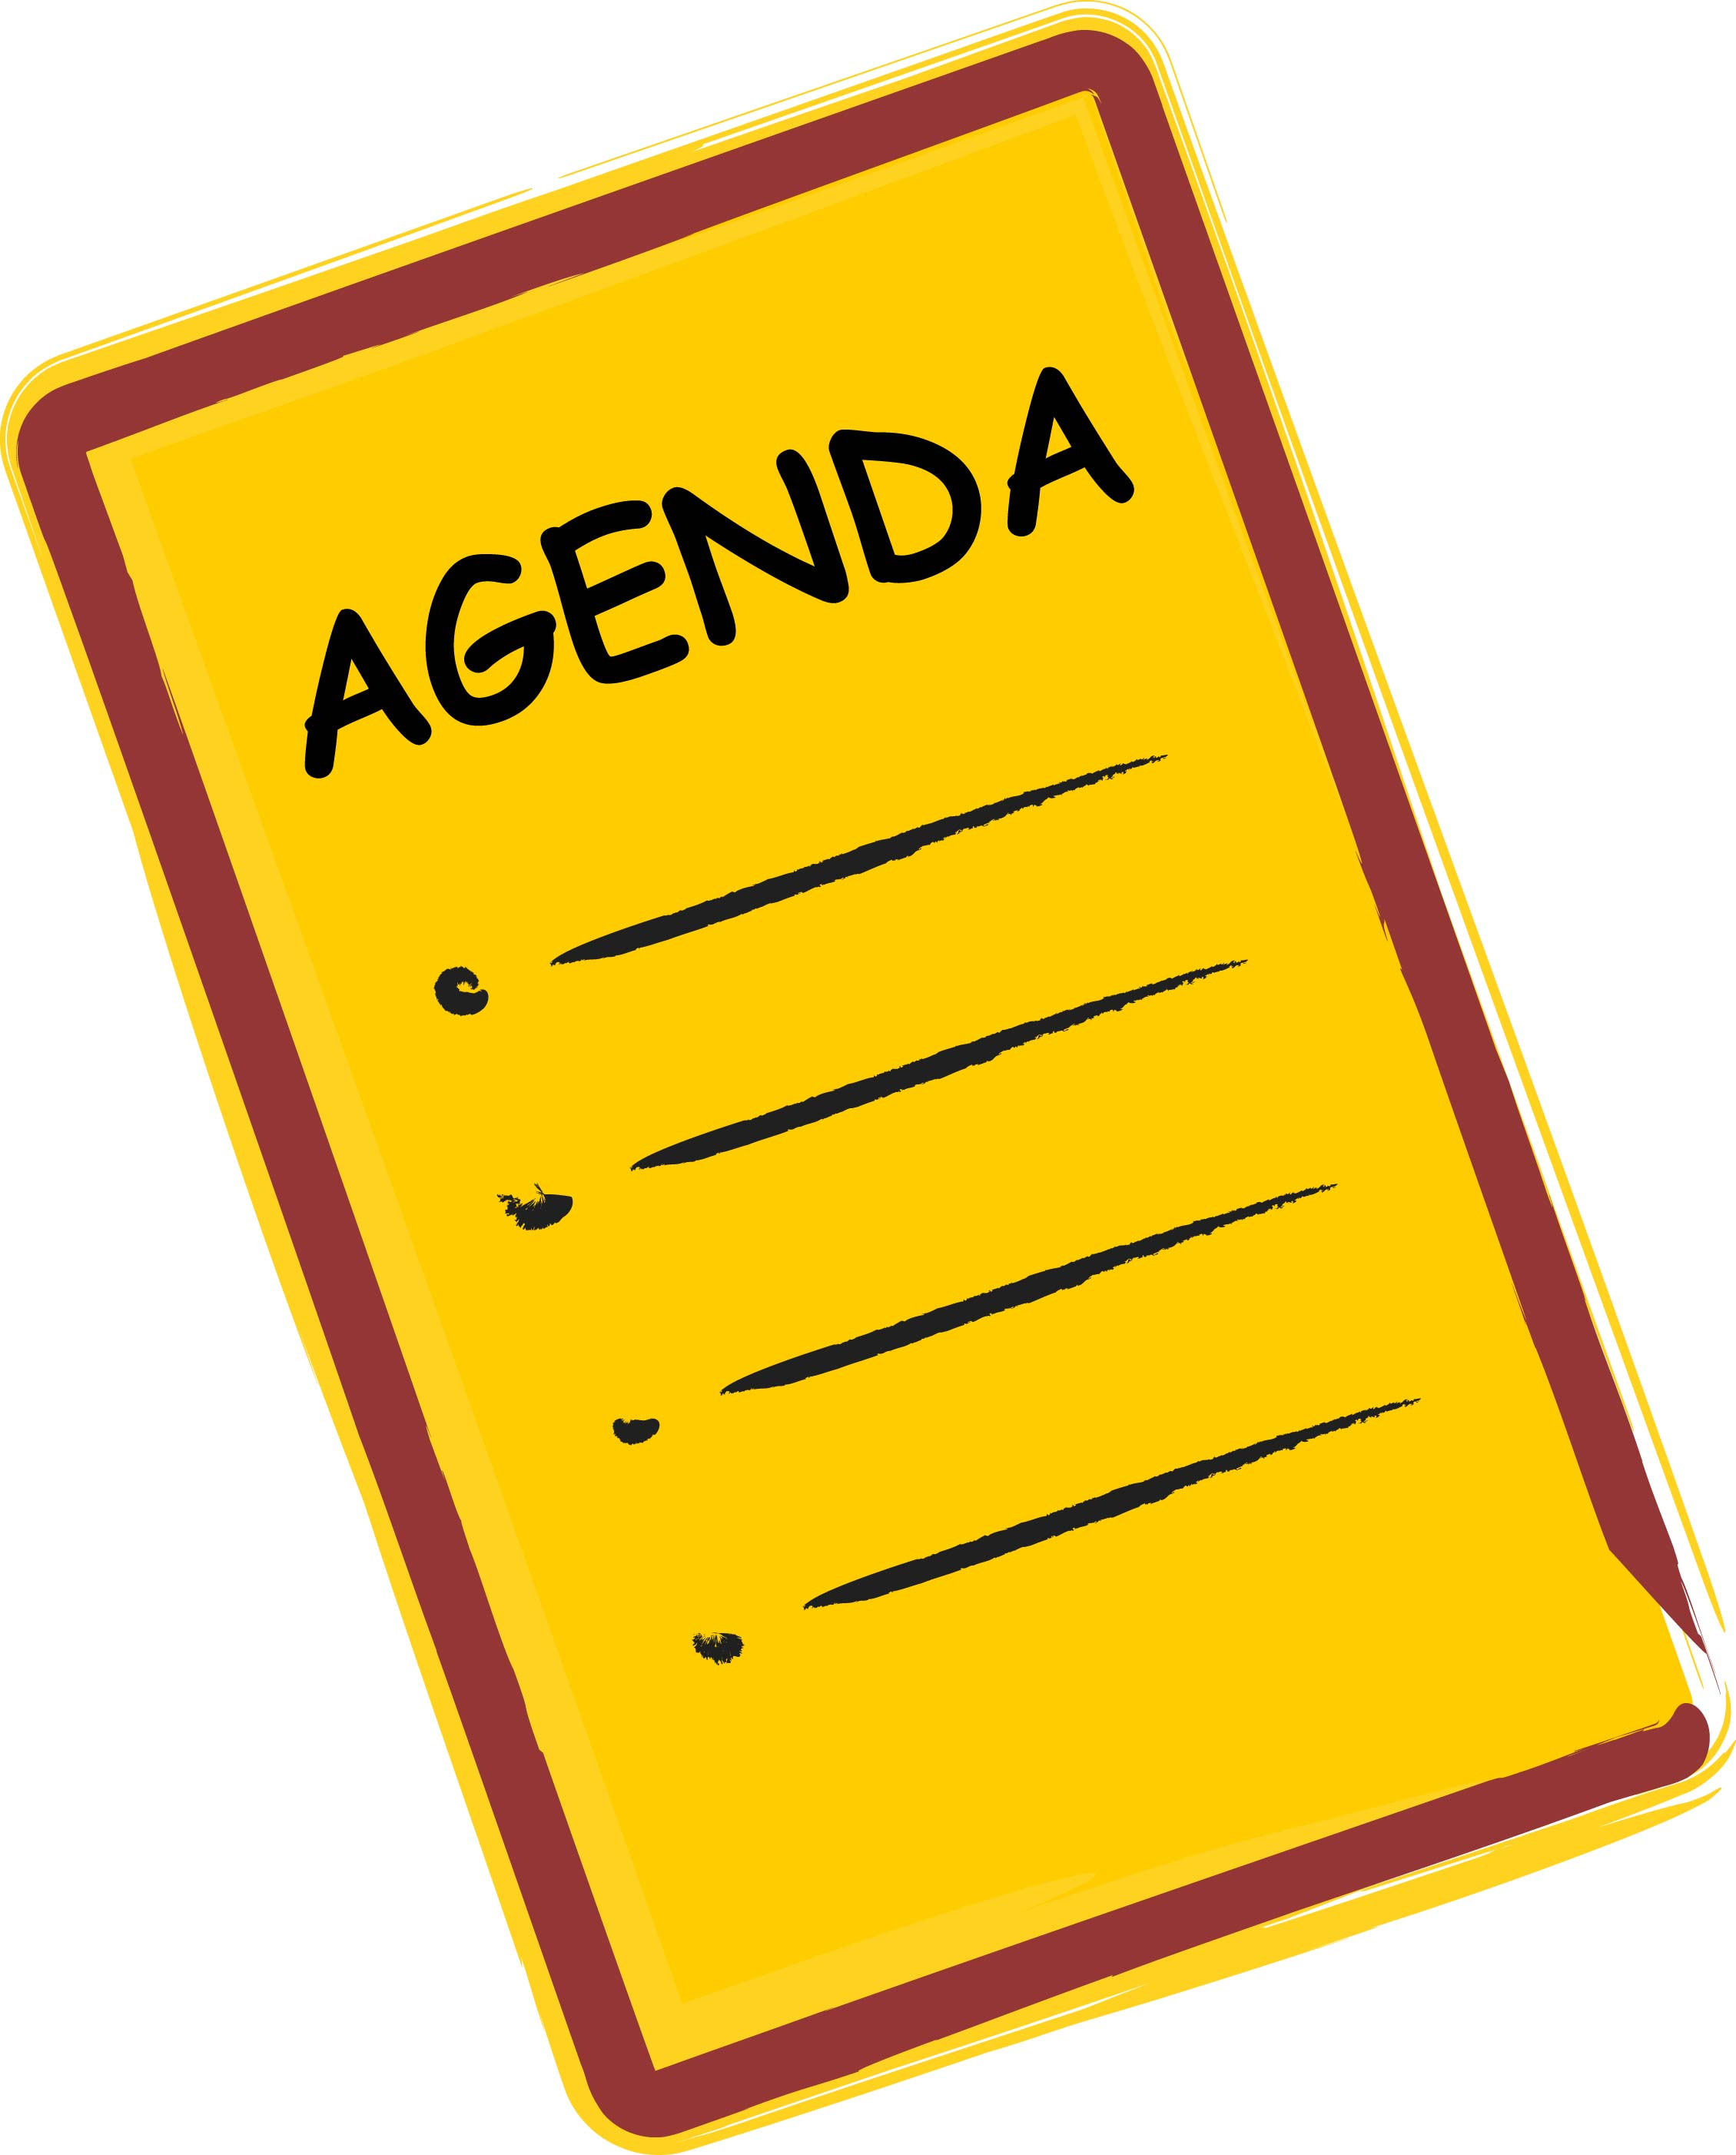 animated-agenda-and-planner-image-0011